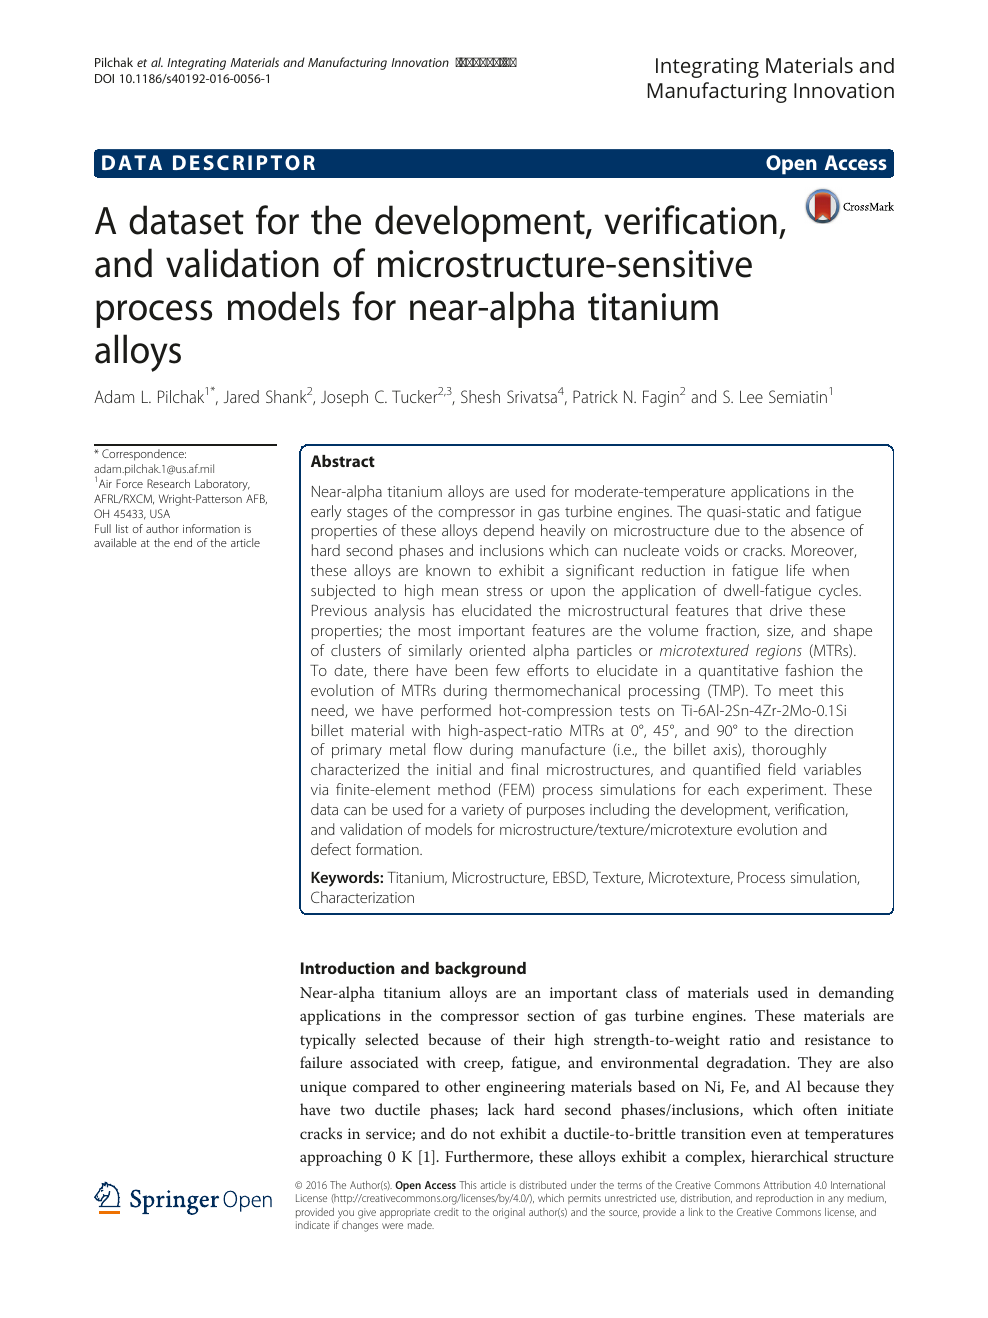 A dataset for the development, verification, and validation